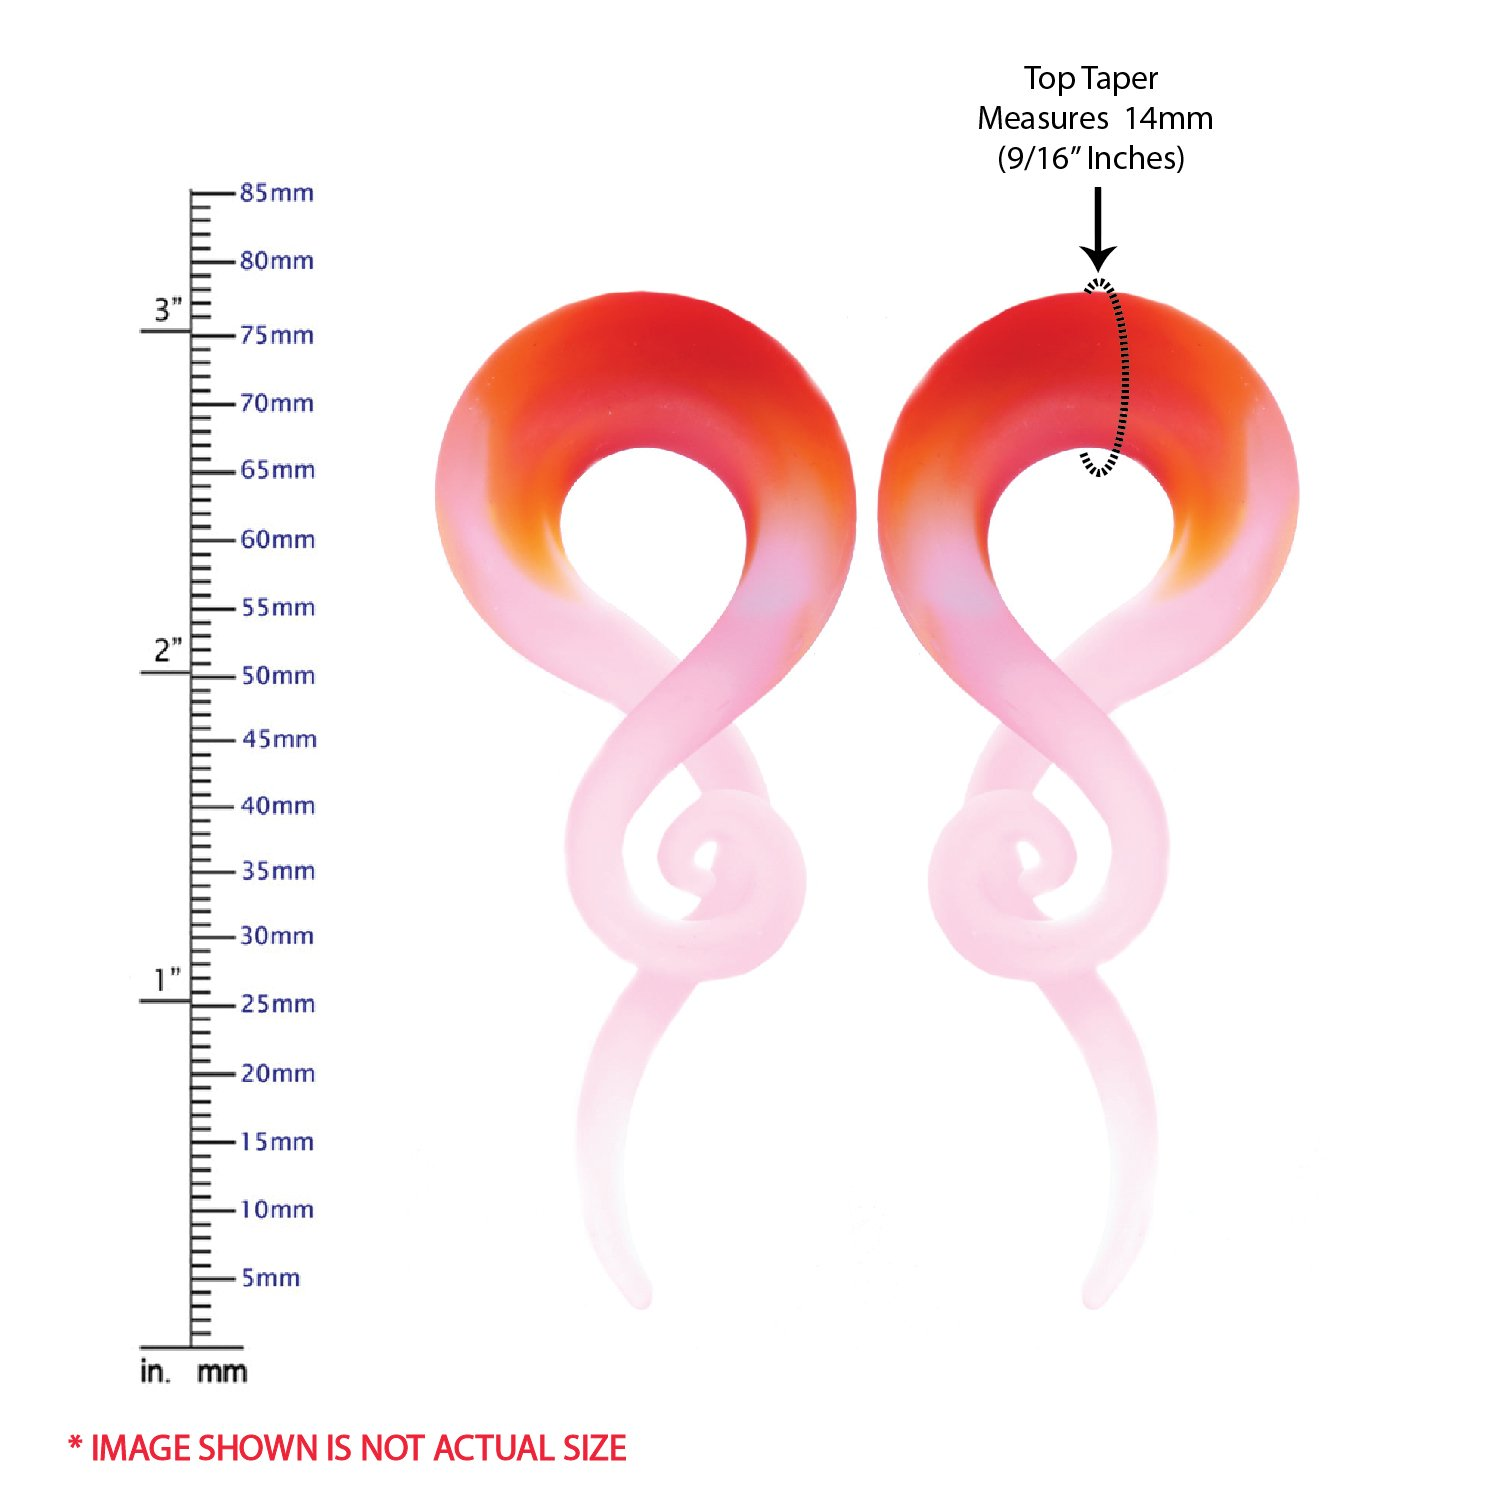 BodyJ4You 2PC Glass Ear Tapers Plugs 4G-16mm Red Pink Swirl Spiral Gauges Piercing Jewelry Set TP7090-12mm